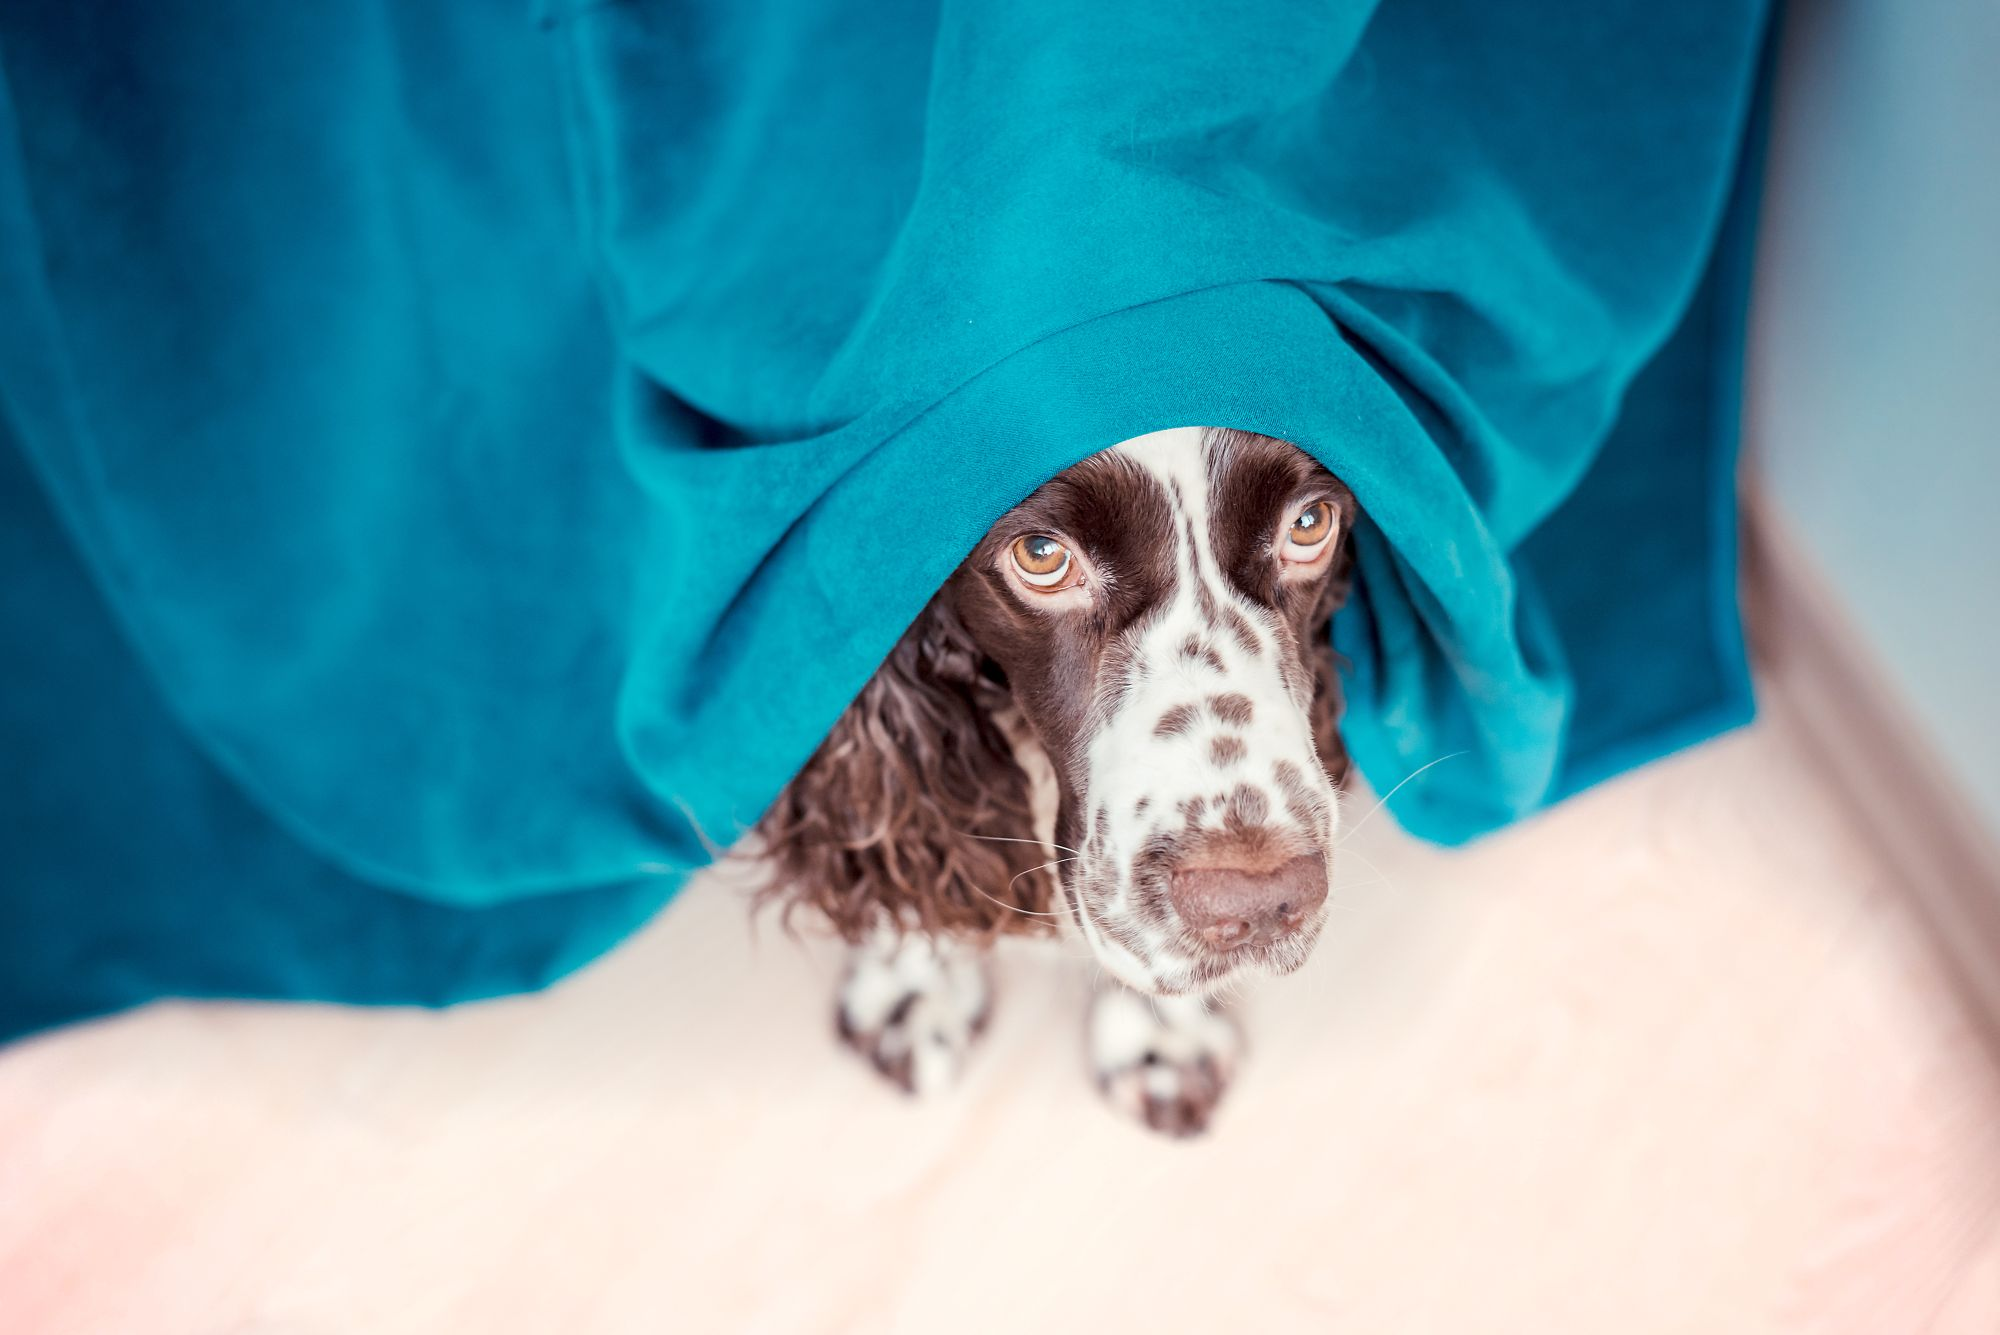 An anxious dog hides under a blanket.